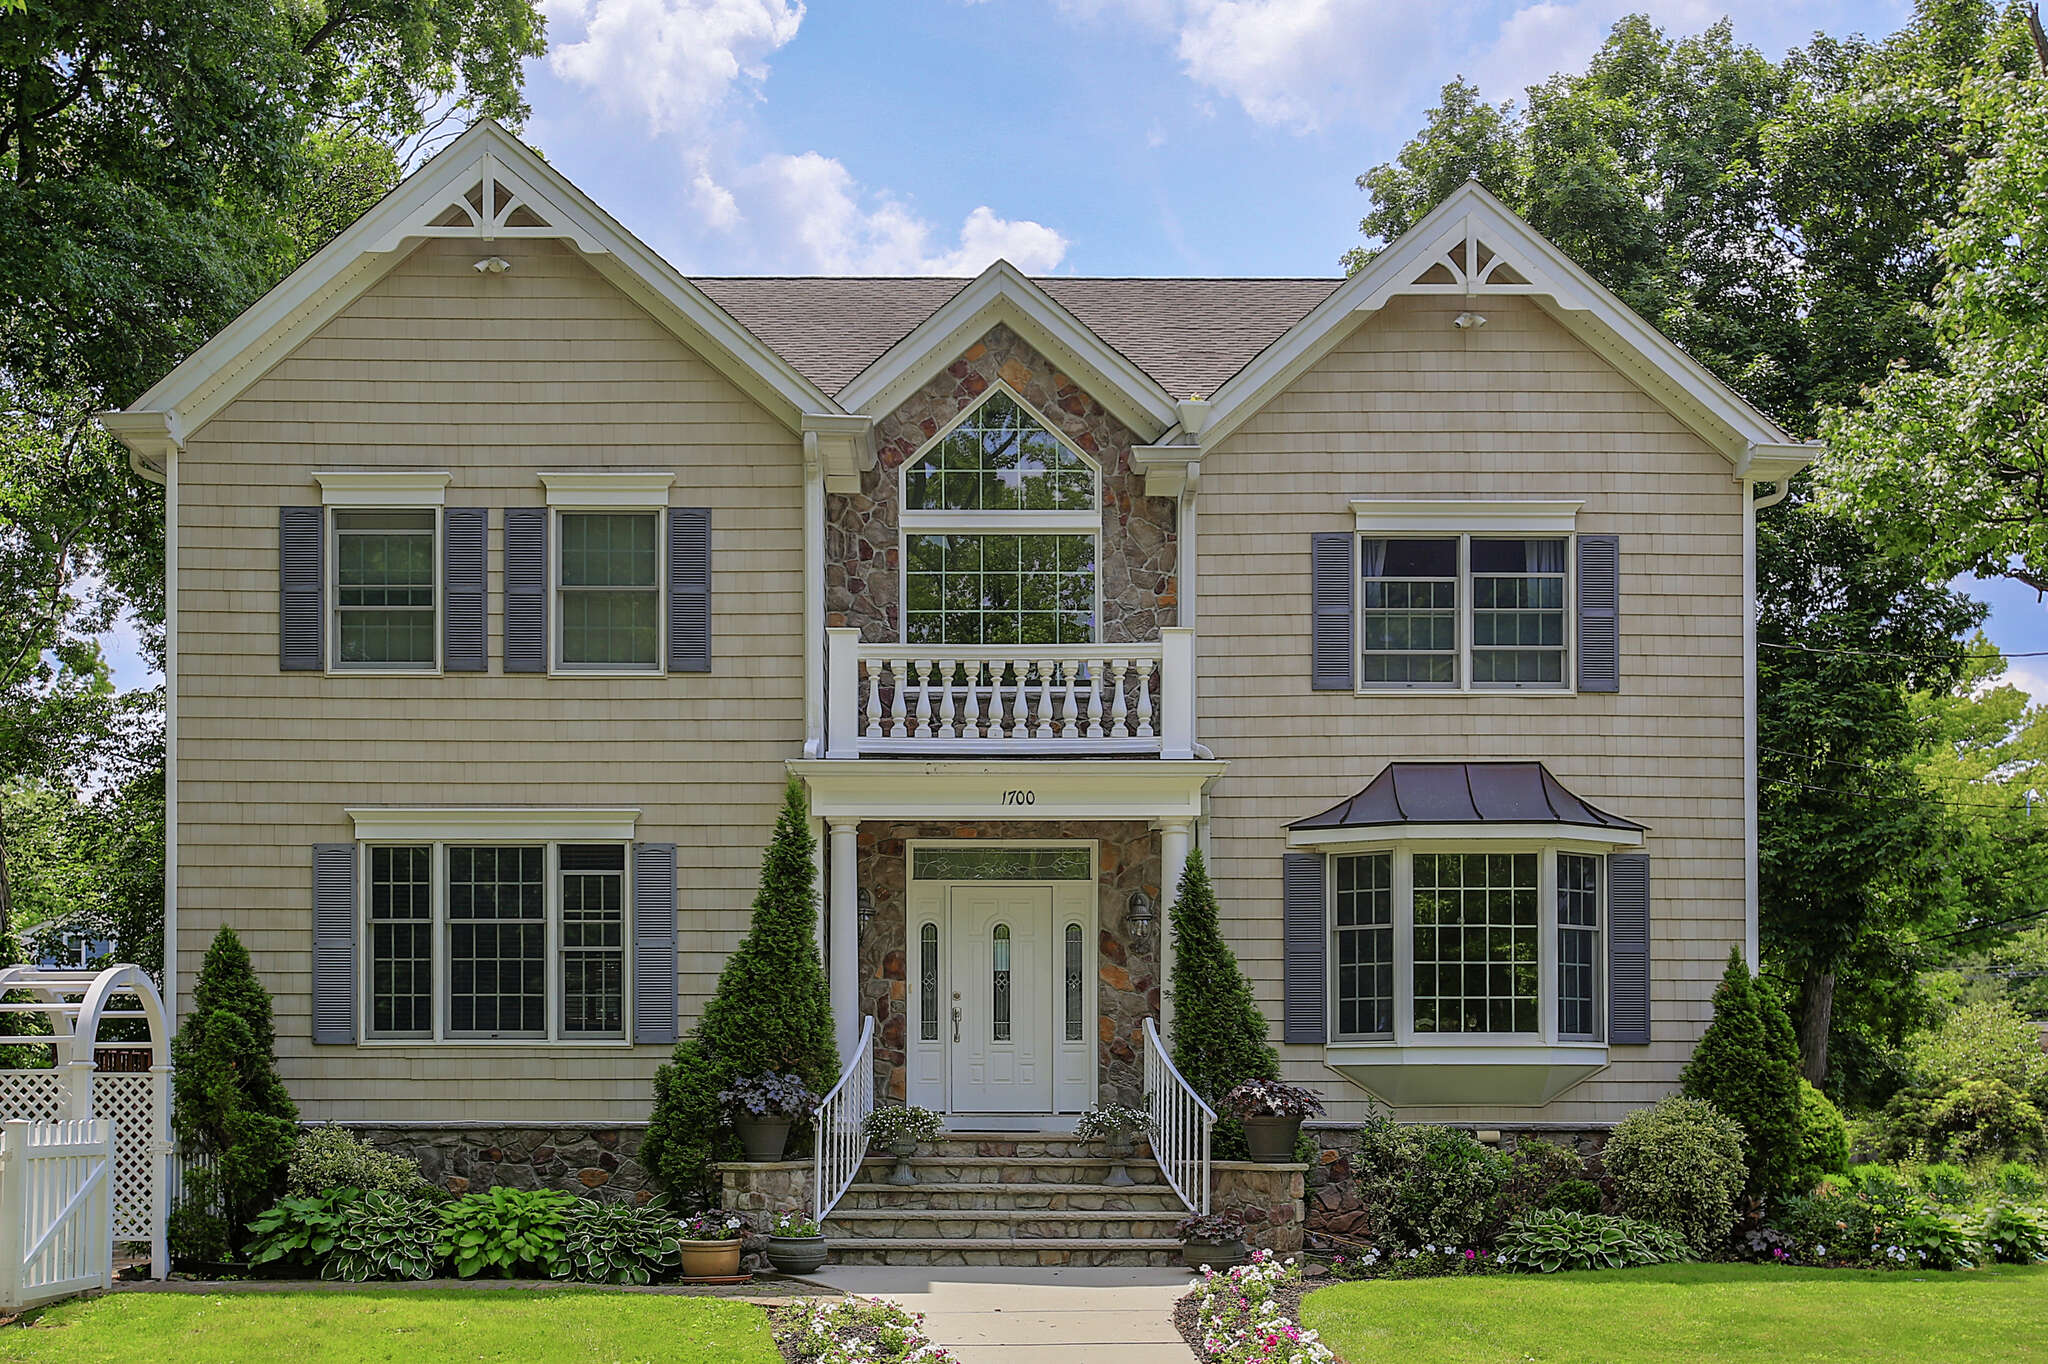 Single Family for Sale at 1700 Boulevard Westfield, New Jersey 07090 United States